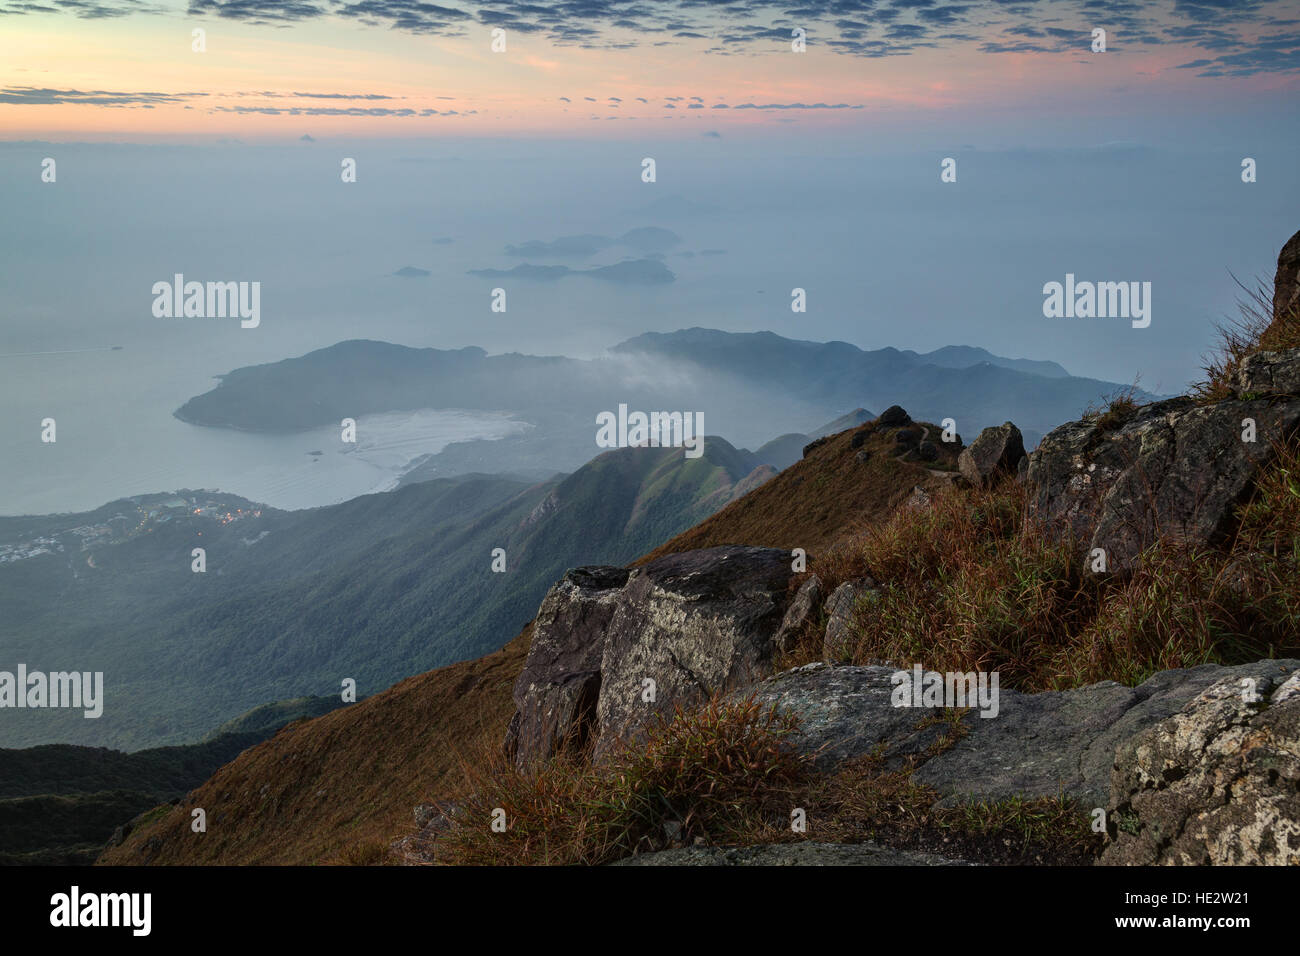 View of the coastline and hills on the Lantau Island from above, viewed from the Lantau Peak on Lantau Island in - Stock Image